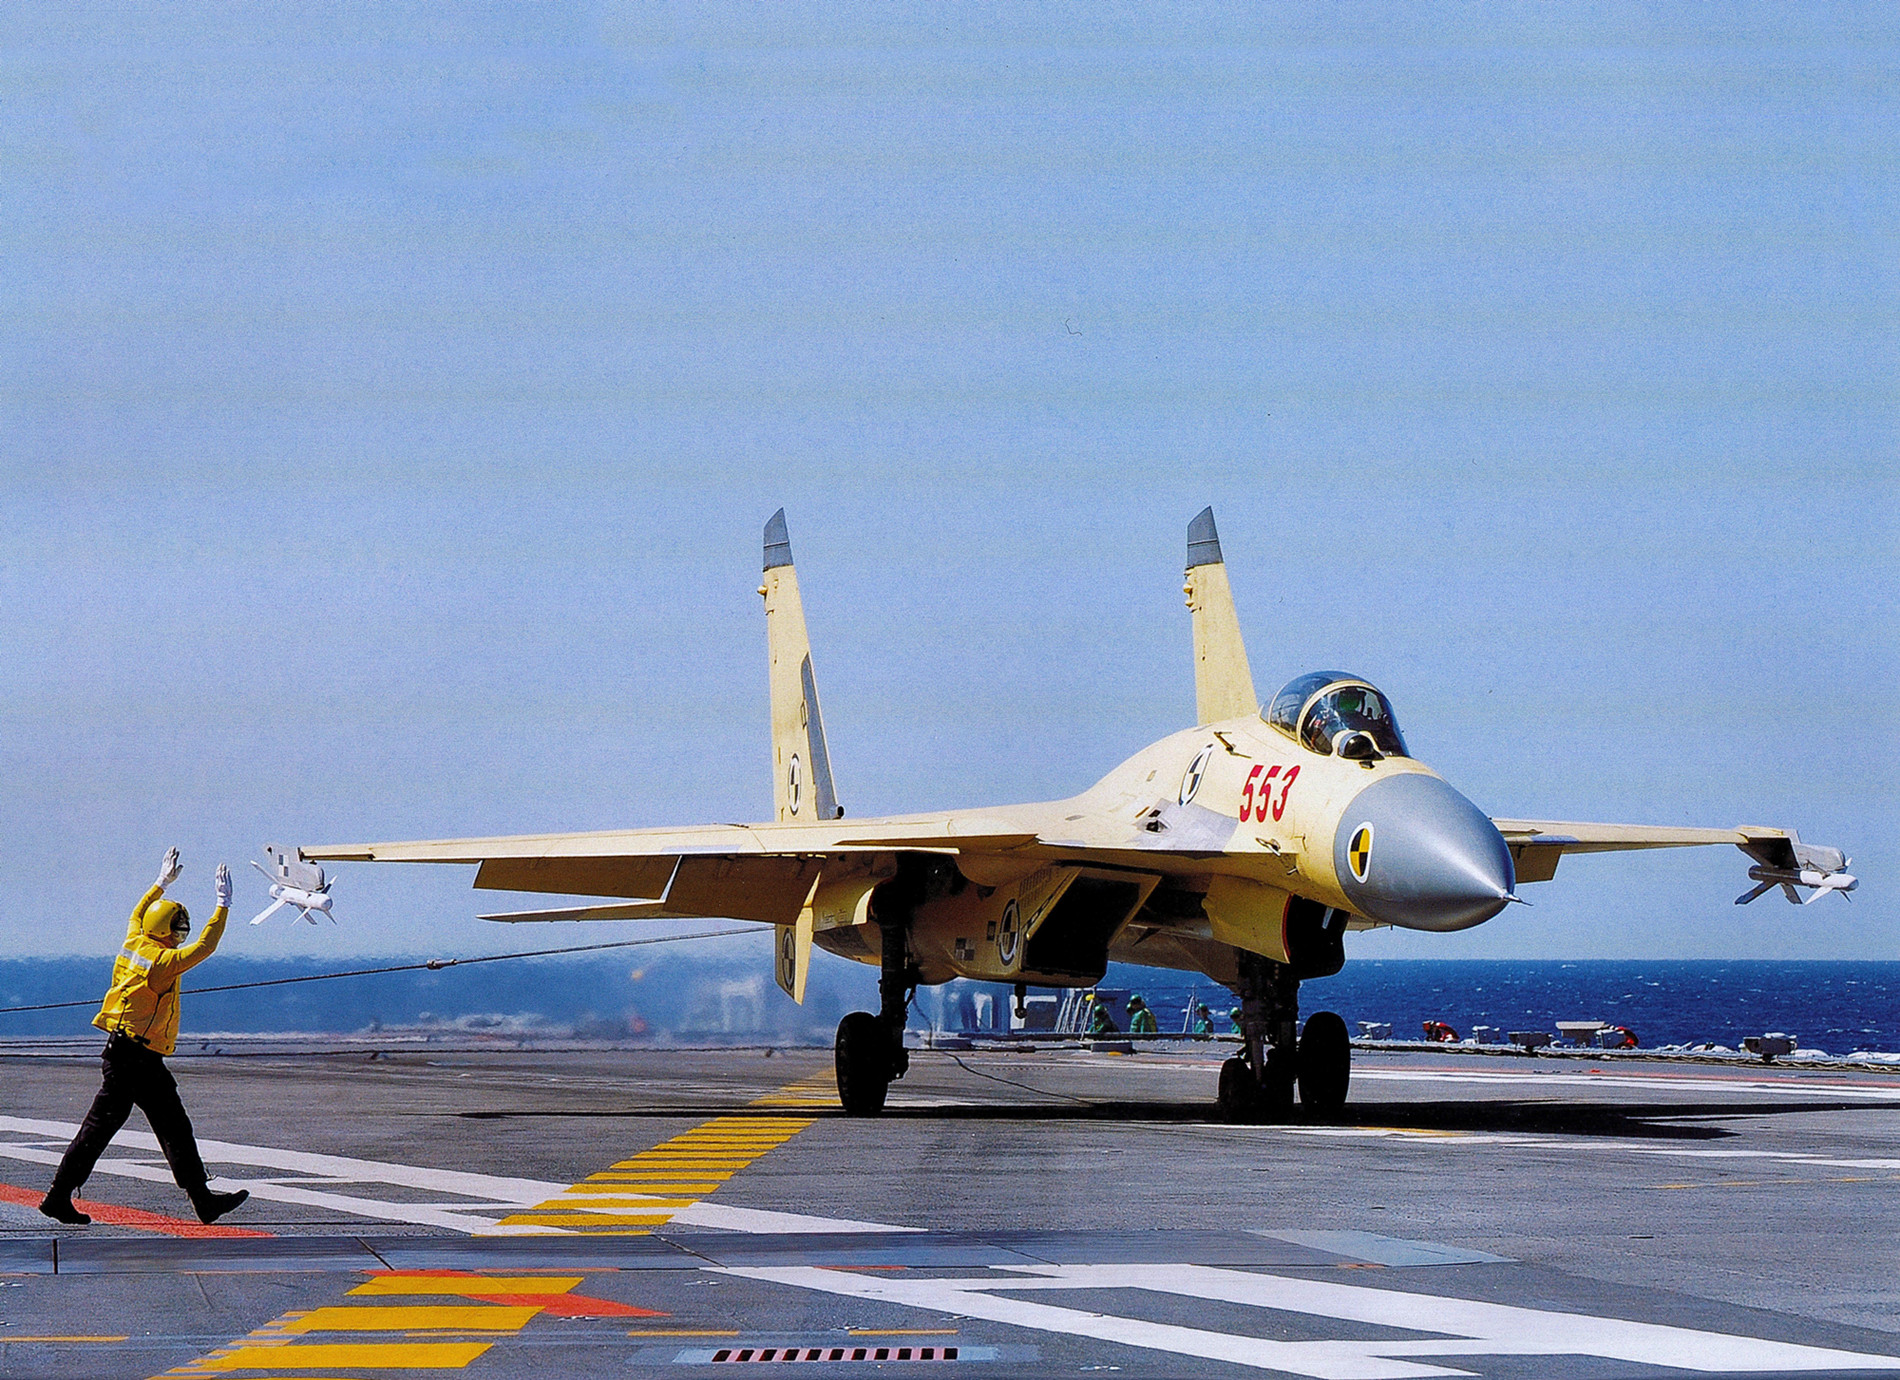 A Chinese J-15 carrier aircraft during testing (note the yellow livery and diagnostic paint scheme.